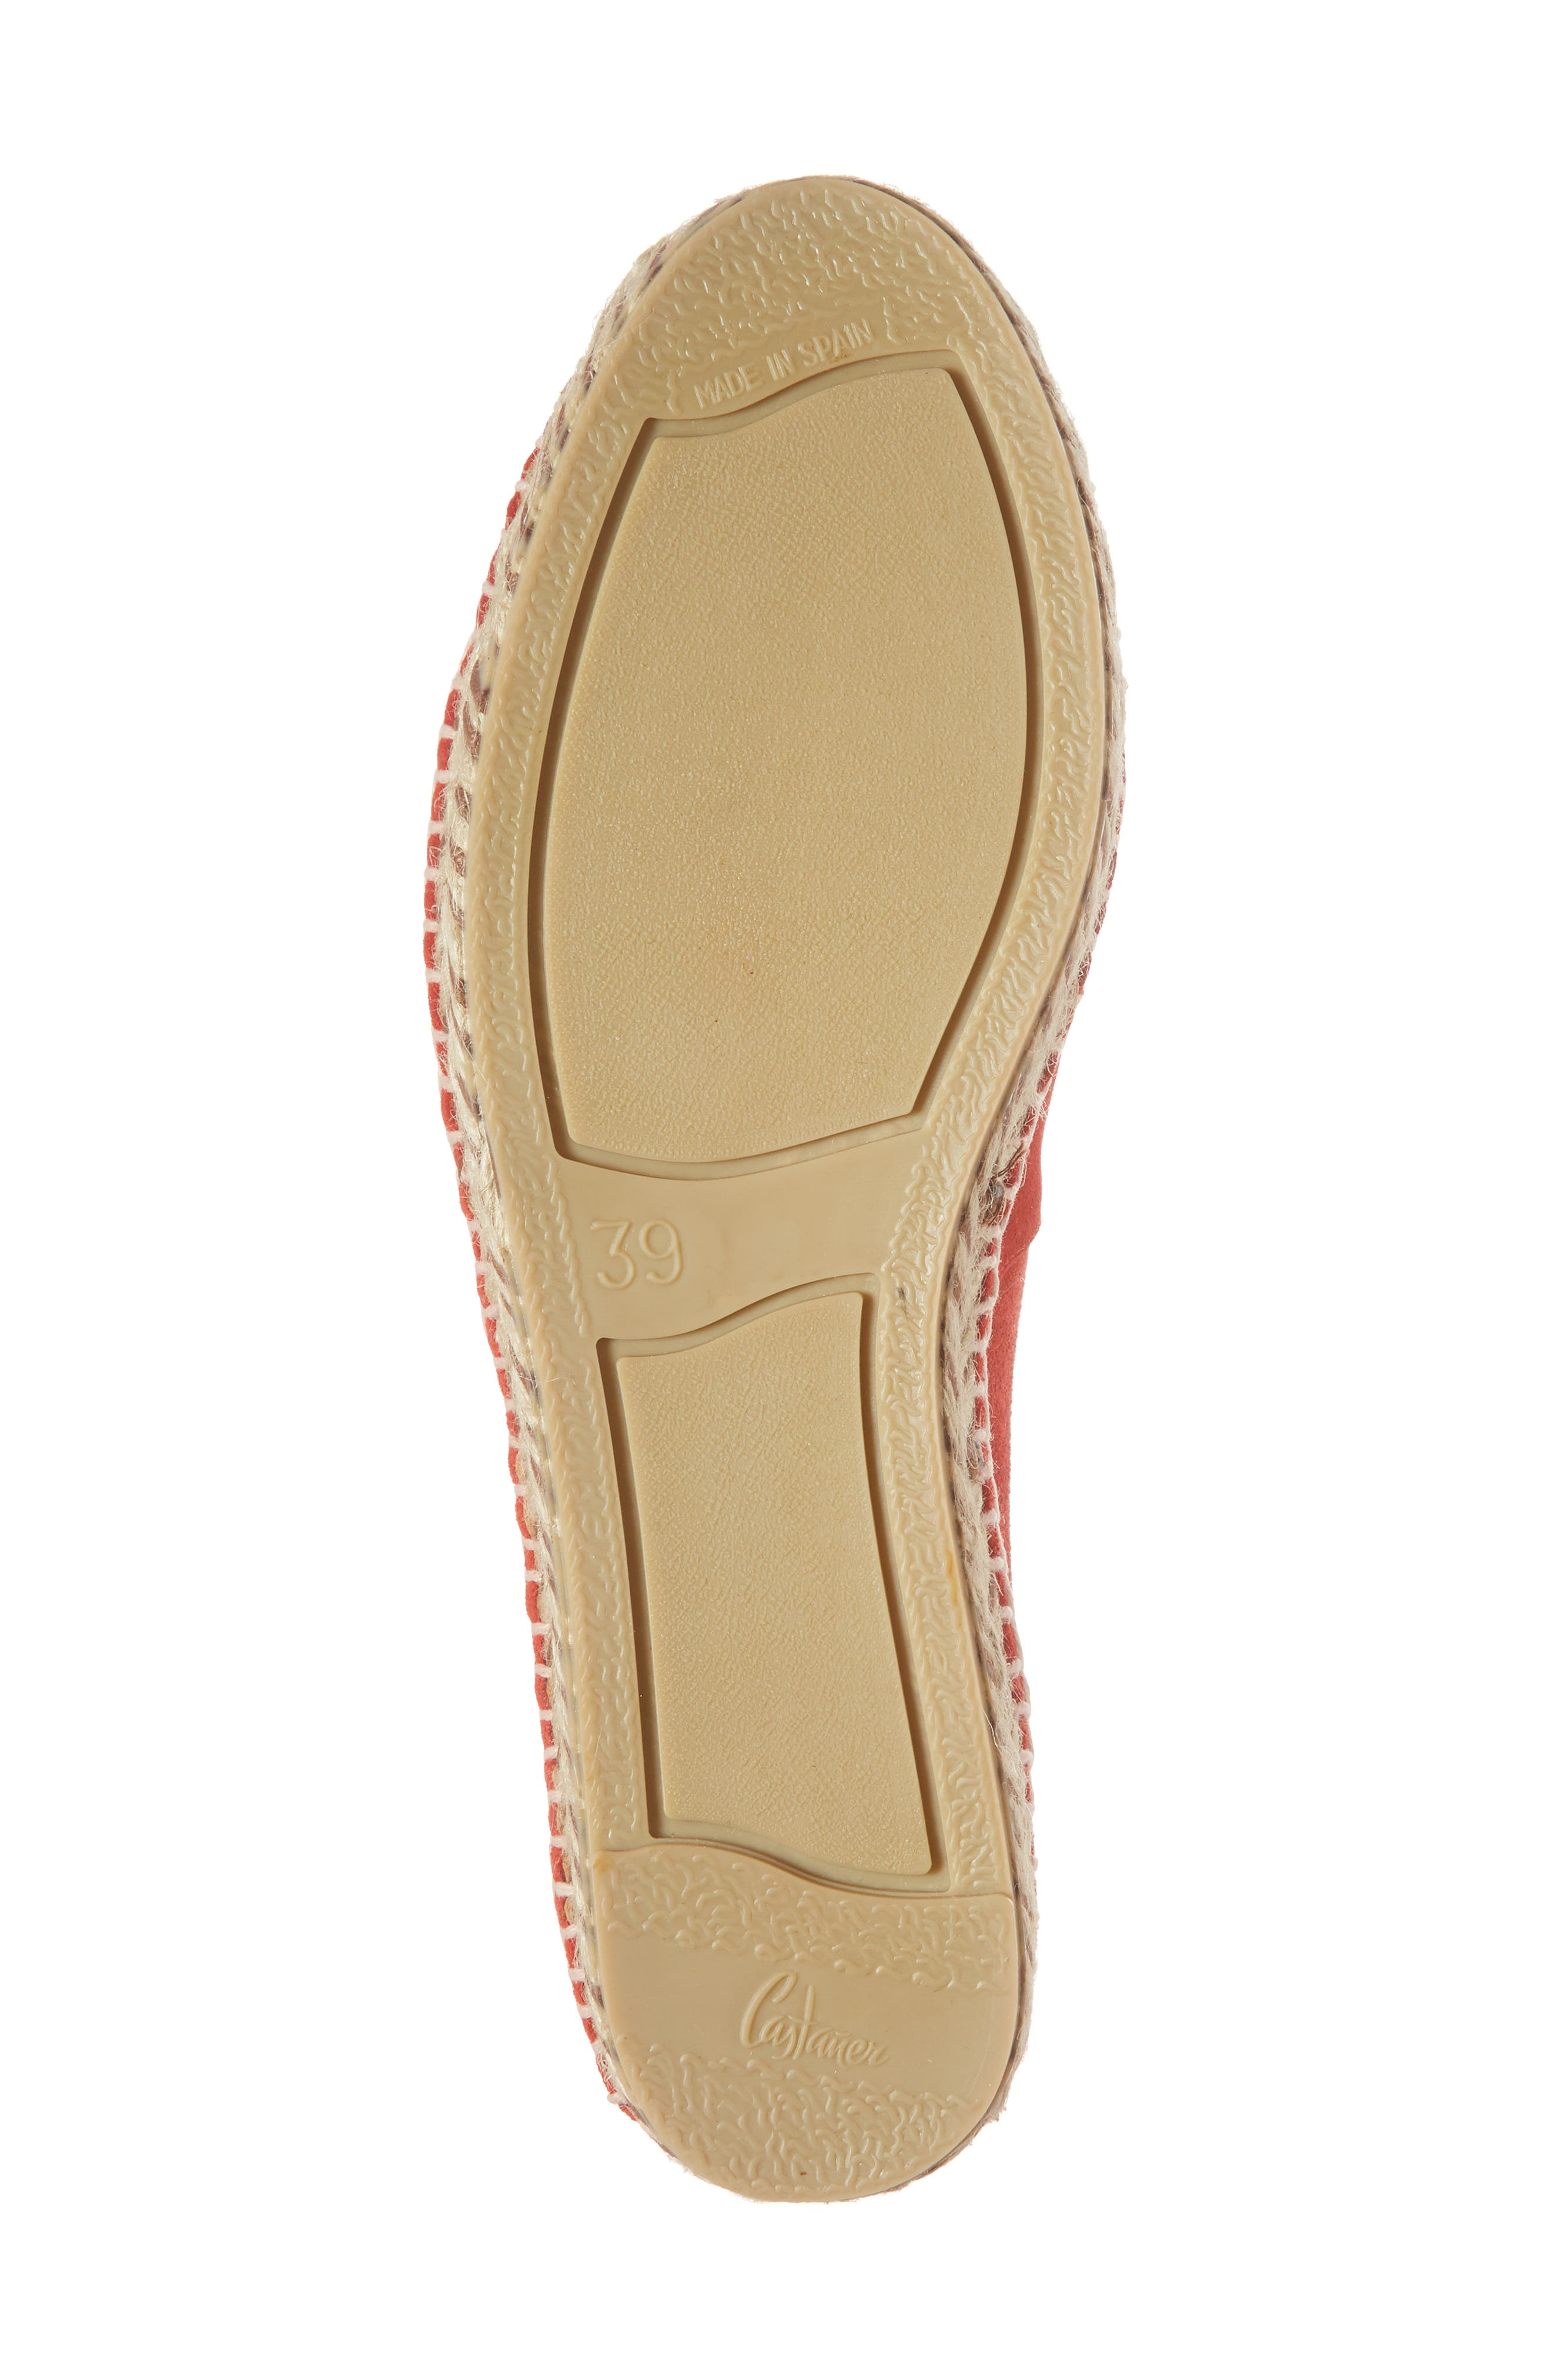 Haddie Espadrille Loafer,                             Alternate thumbnail 6, color,                             Red Suede